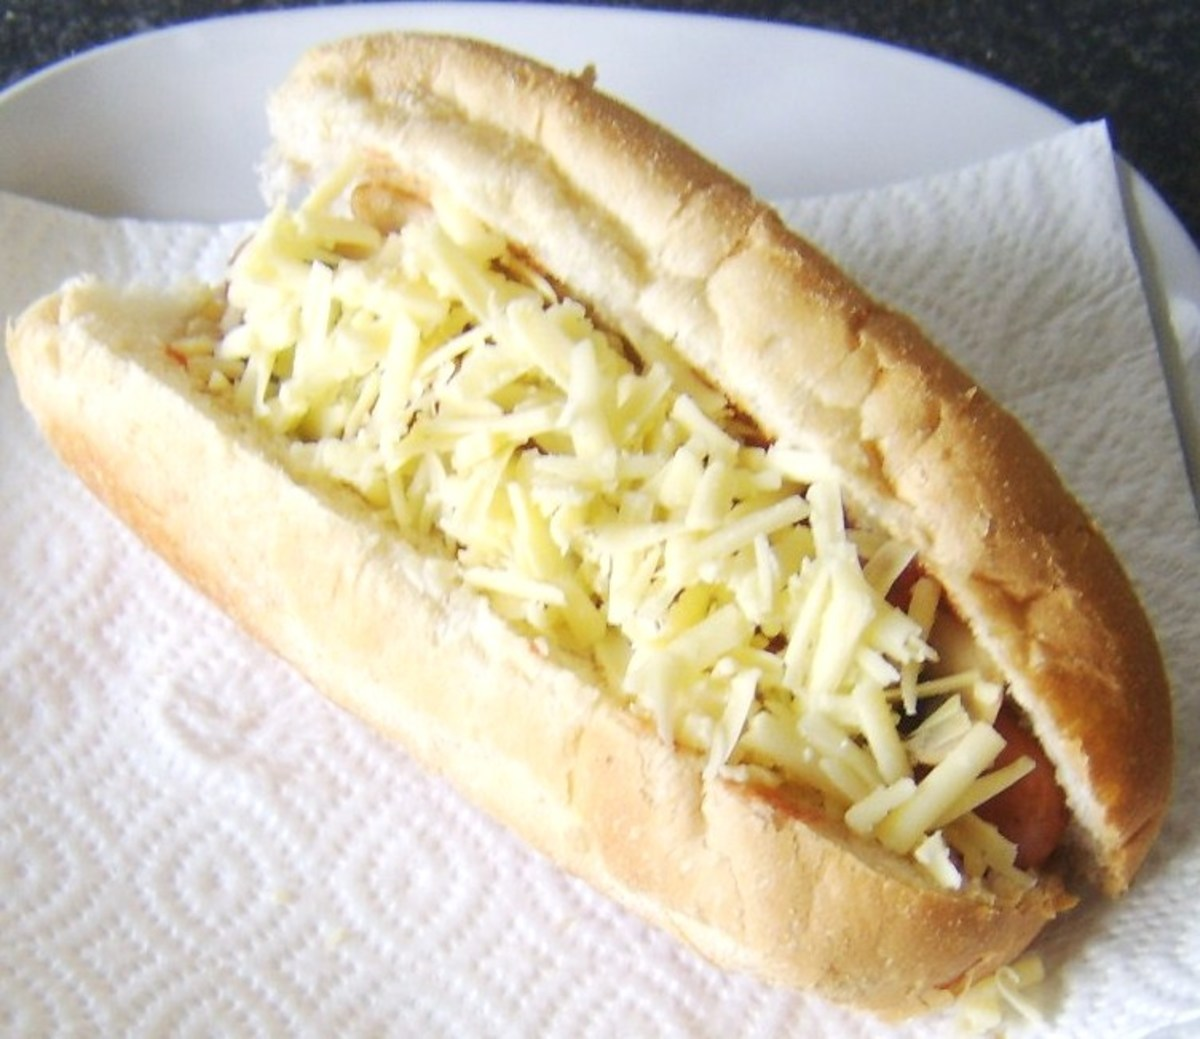 Grated cheese is scattered on hot dog for melting